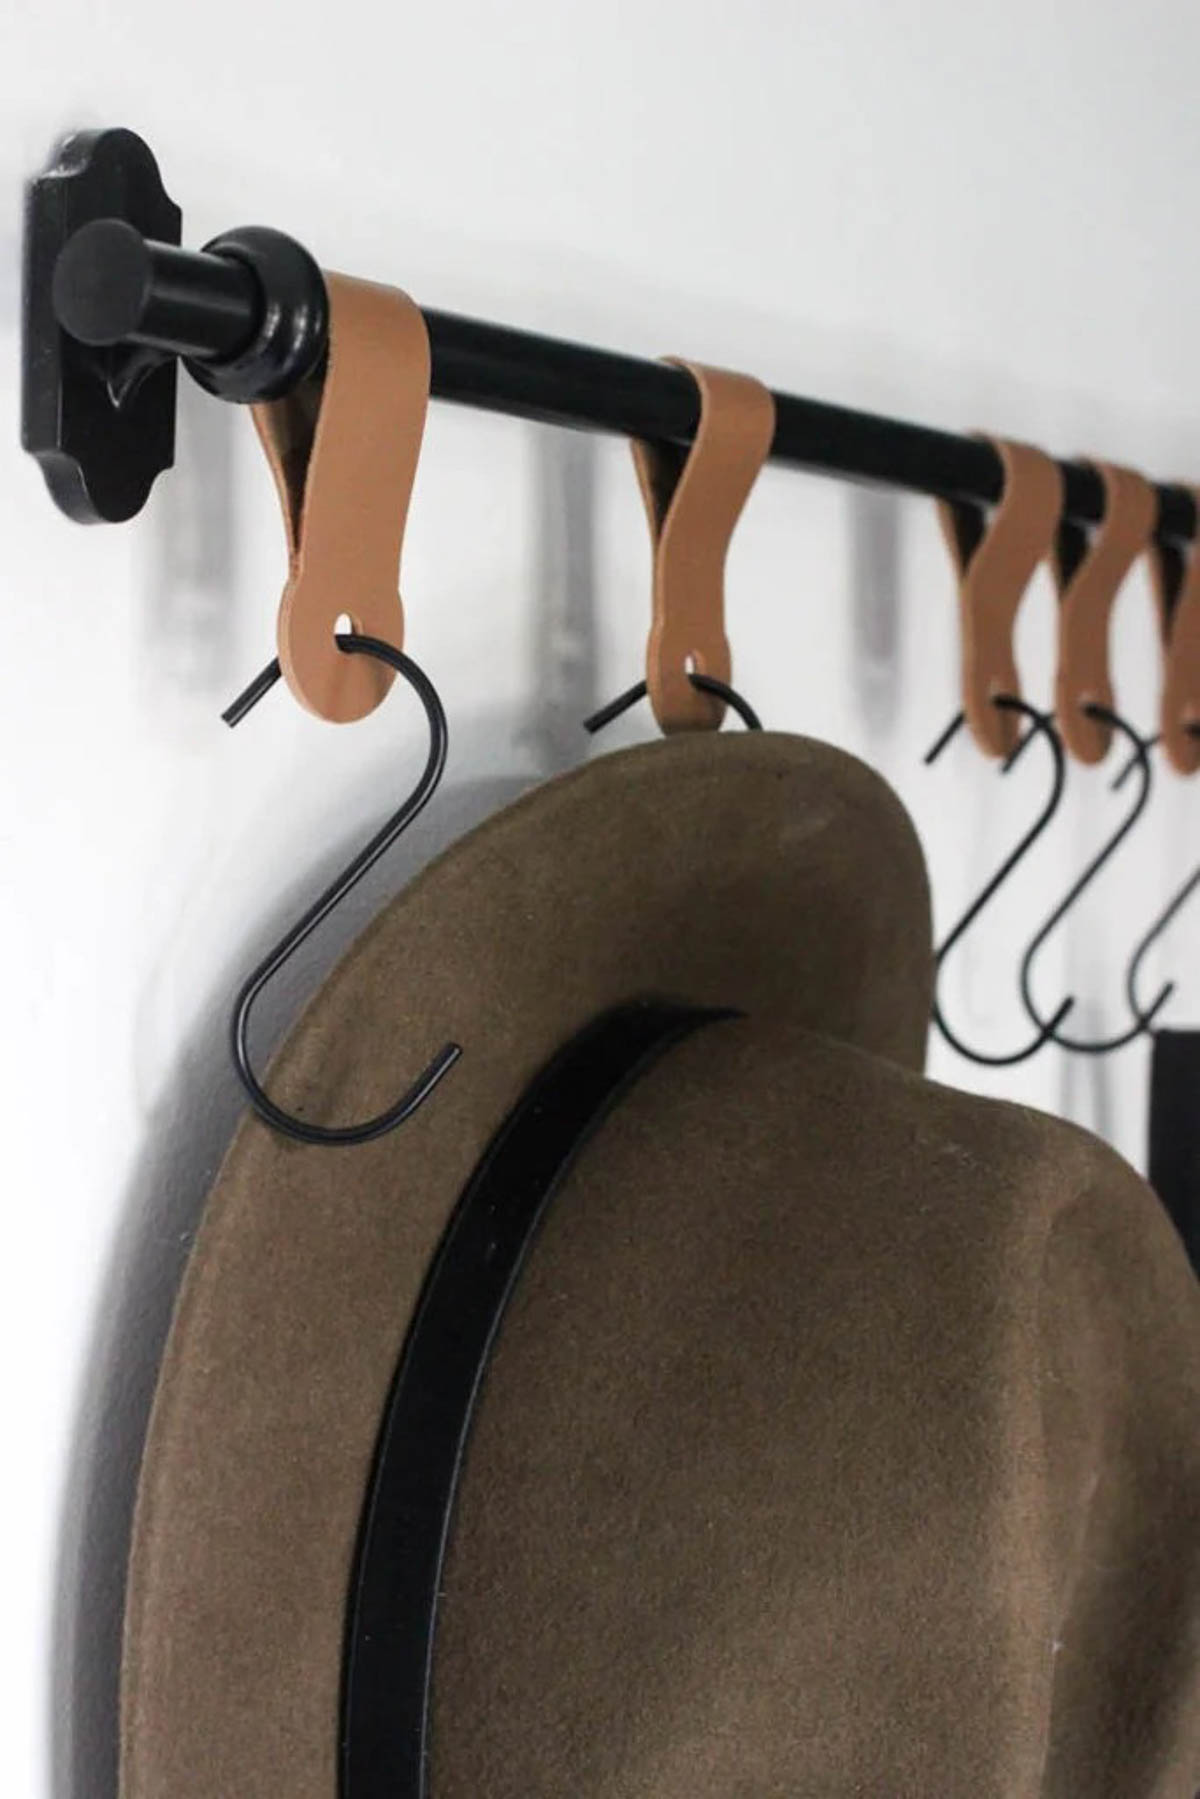 Leather straps with metal hooks holding a hat